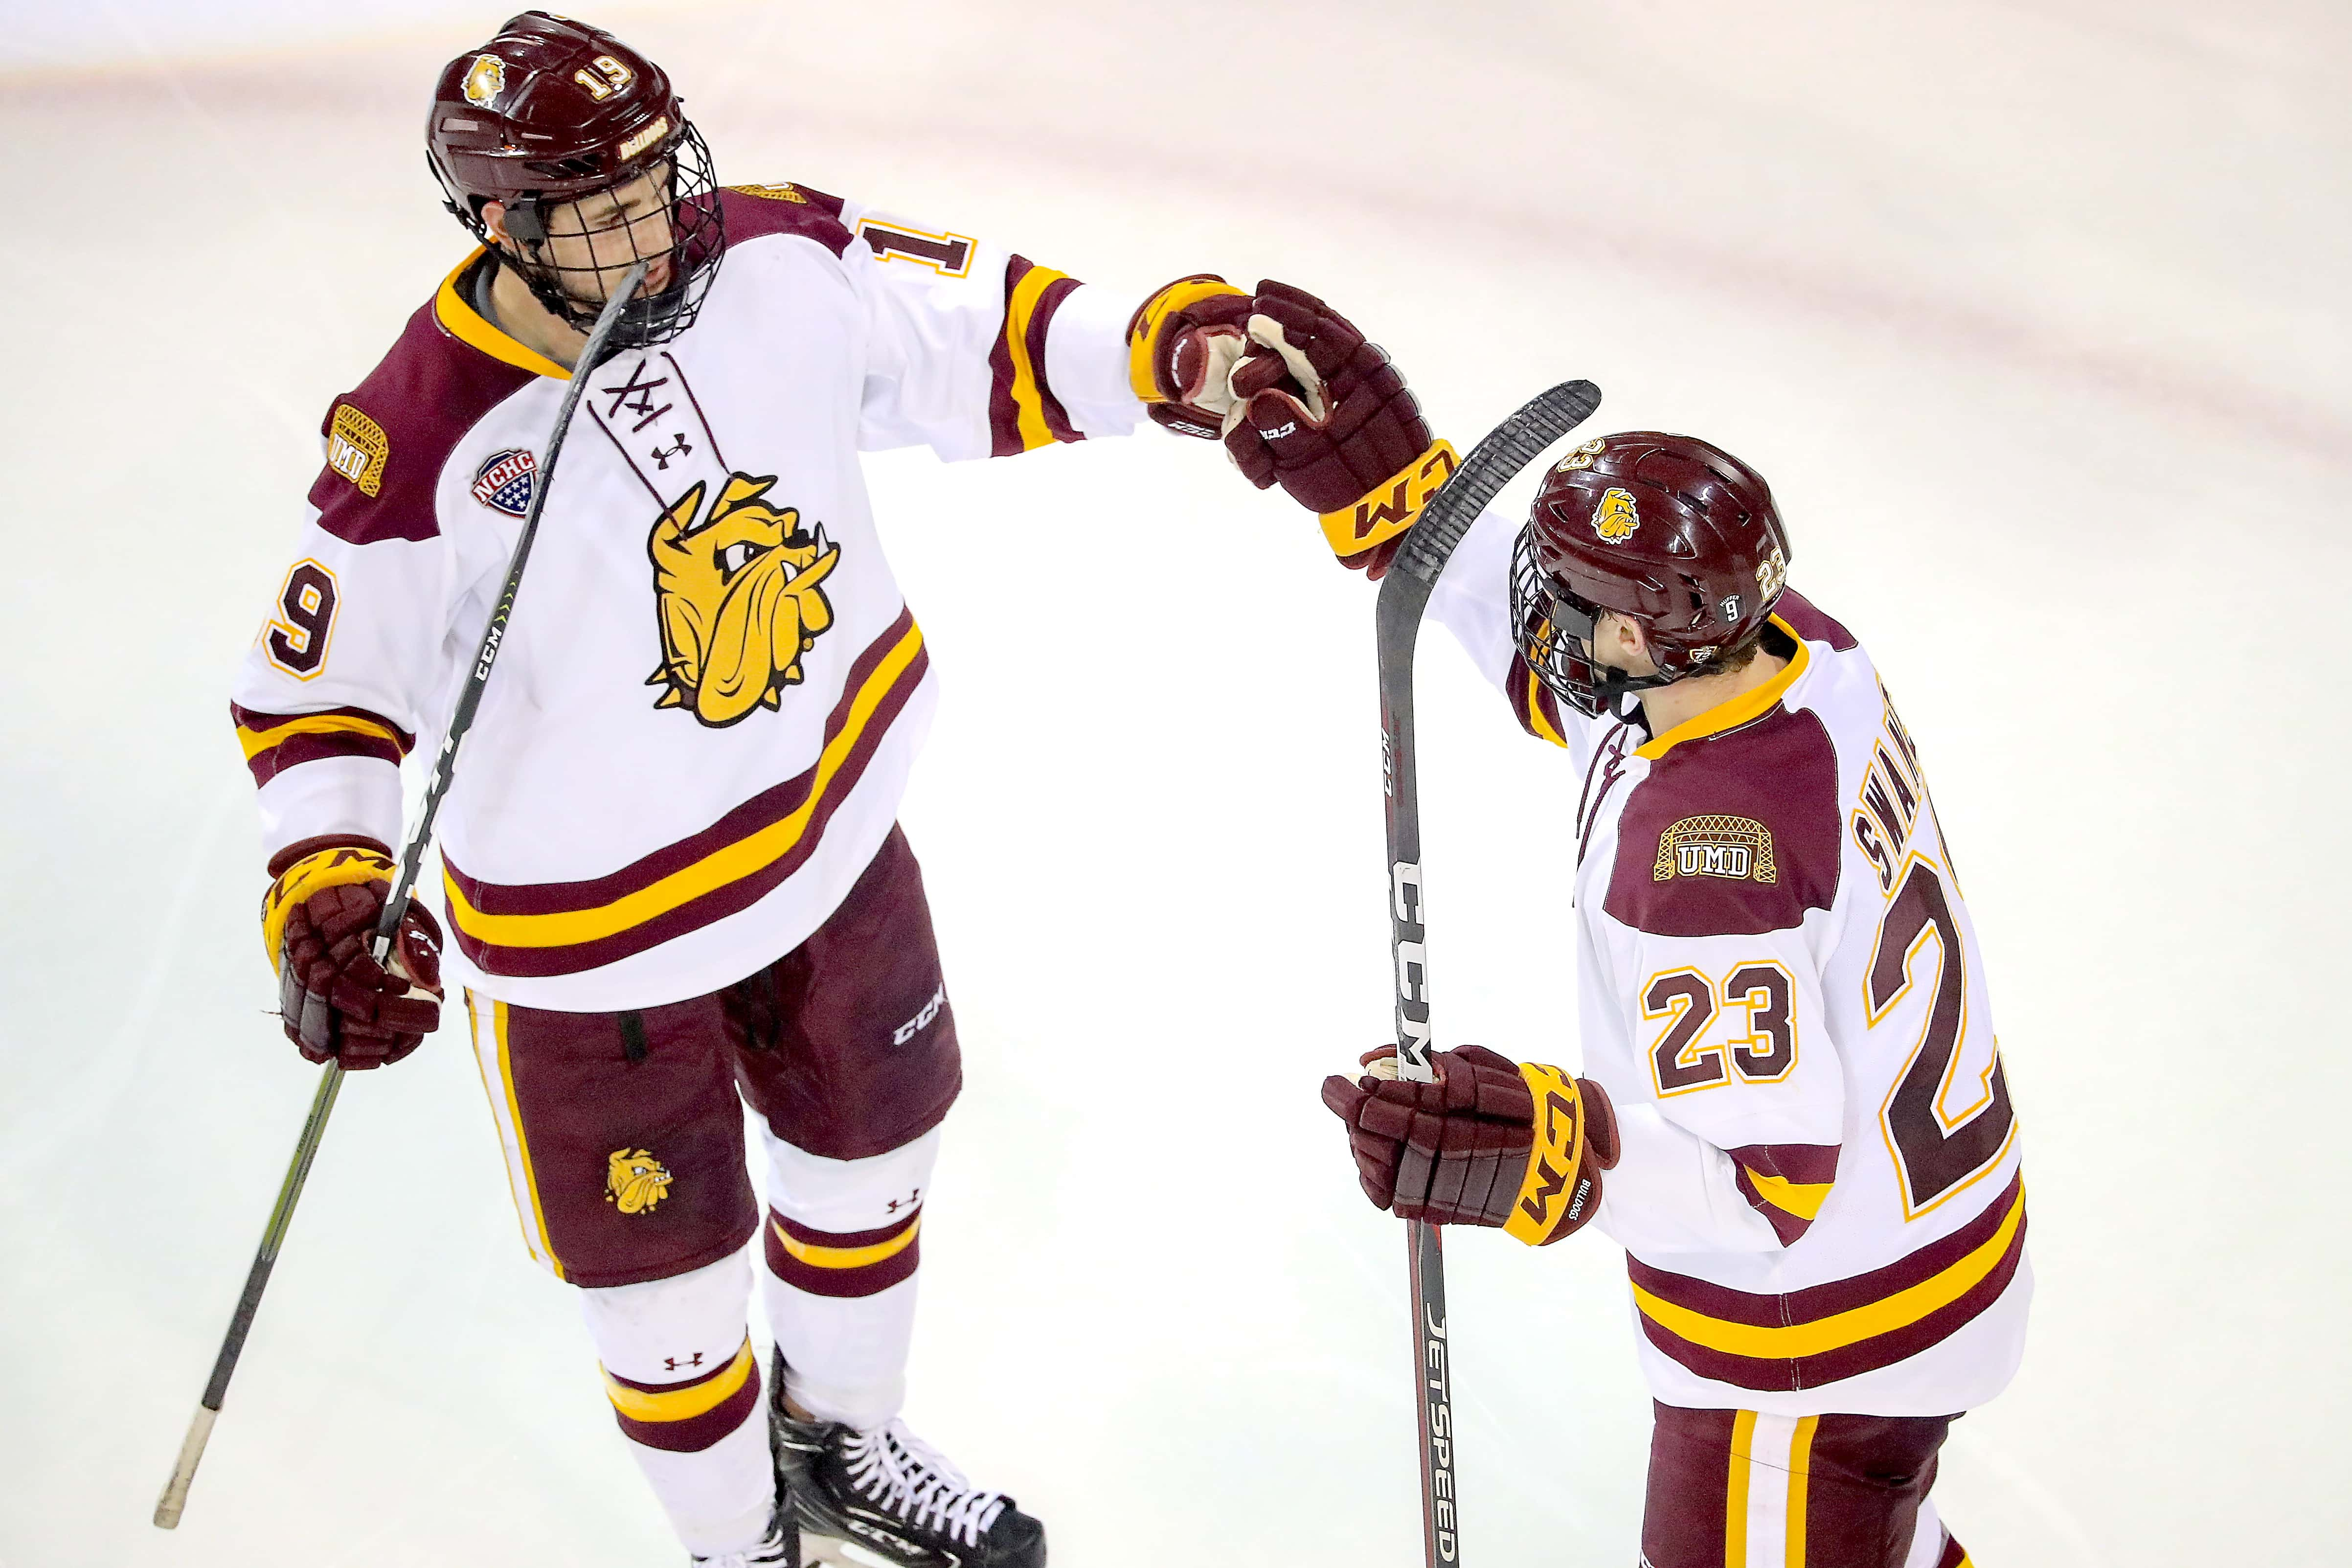 info for 006f6 09761 Swaney's hat trick leads Minnesota Duluth past Omaha | The ...